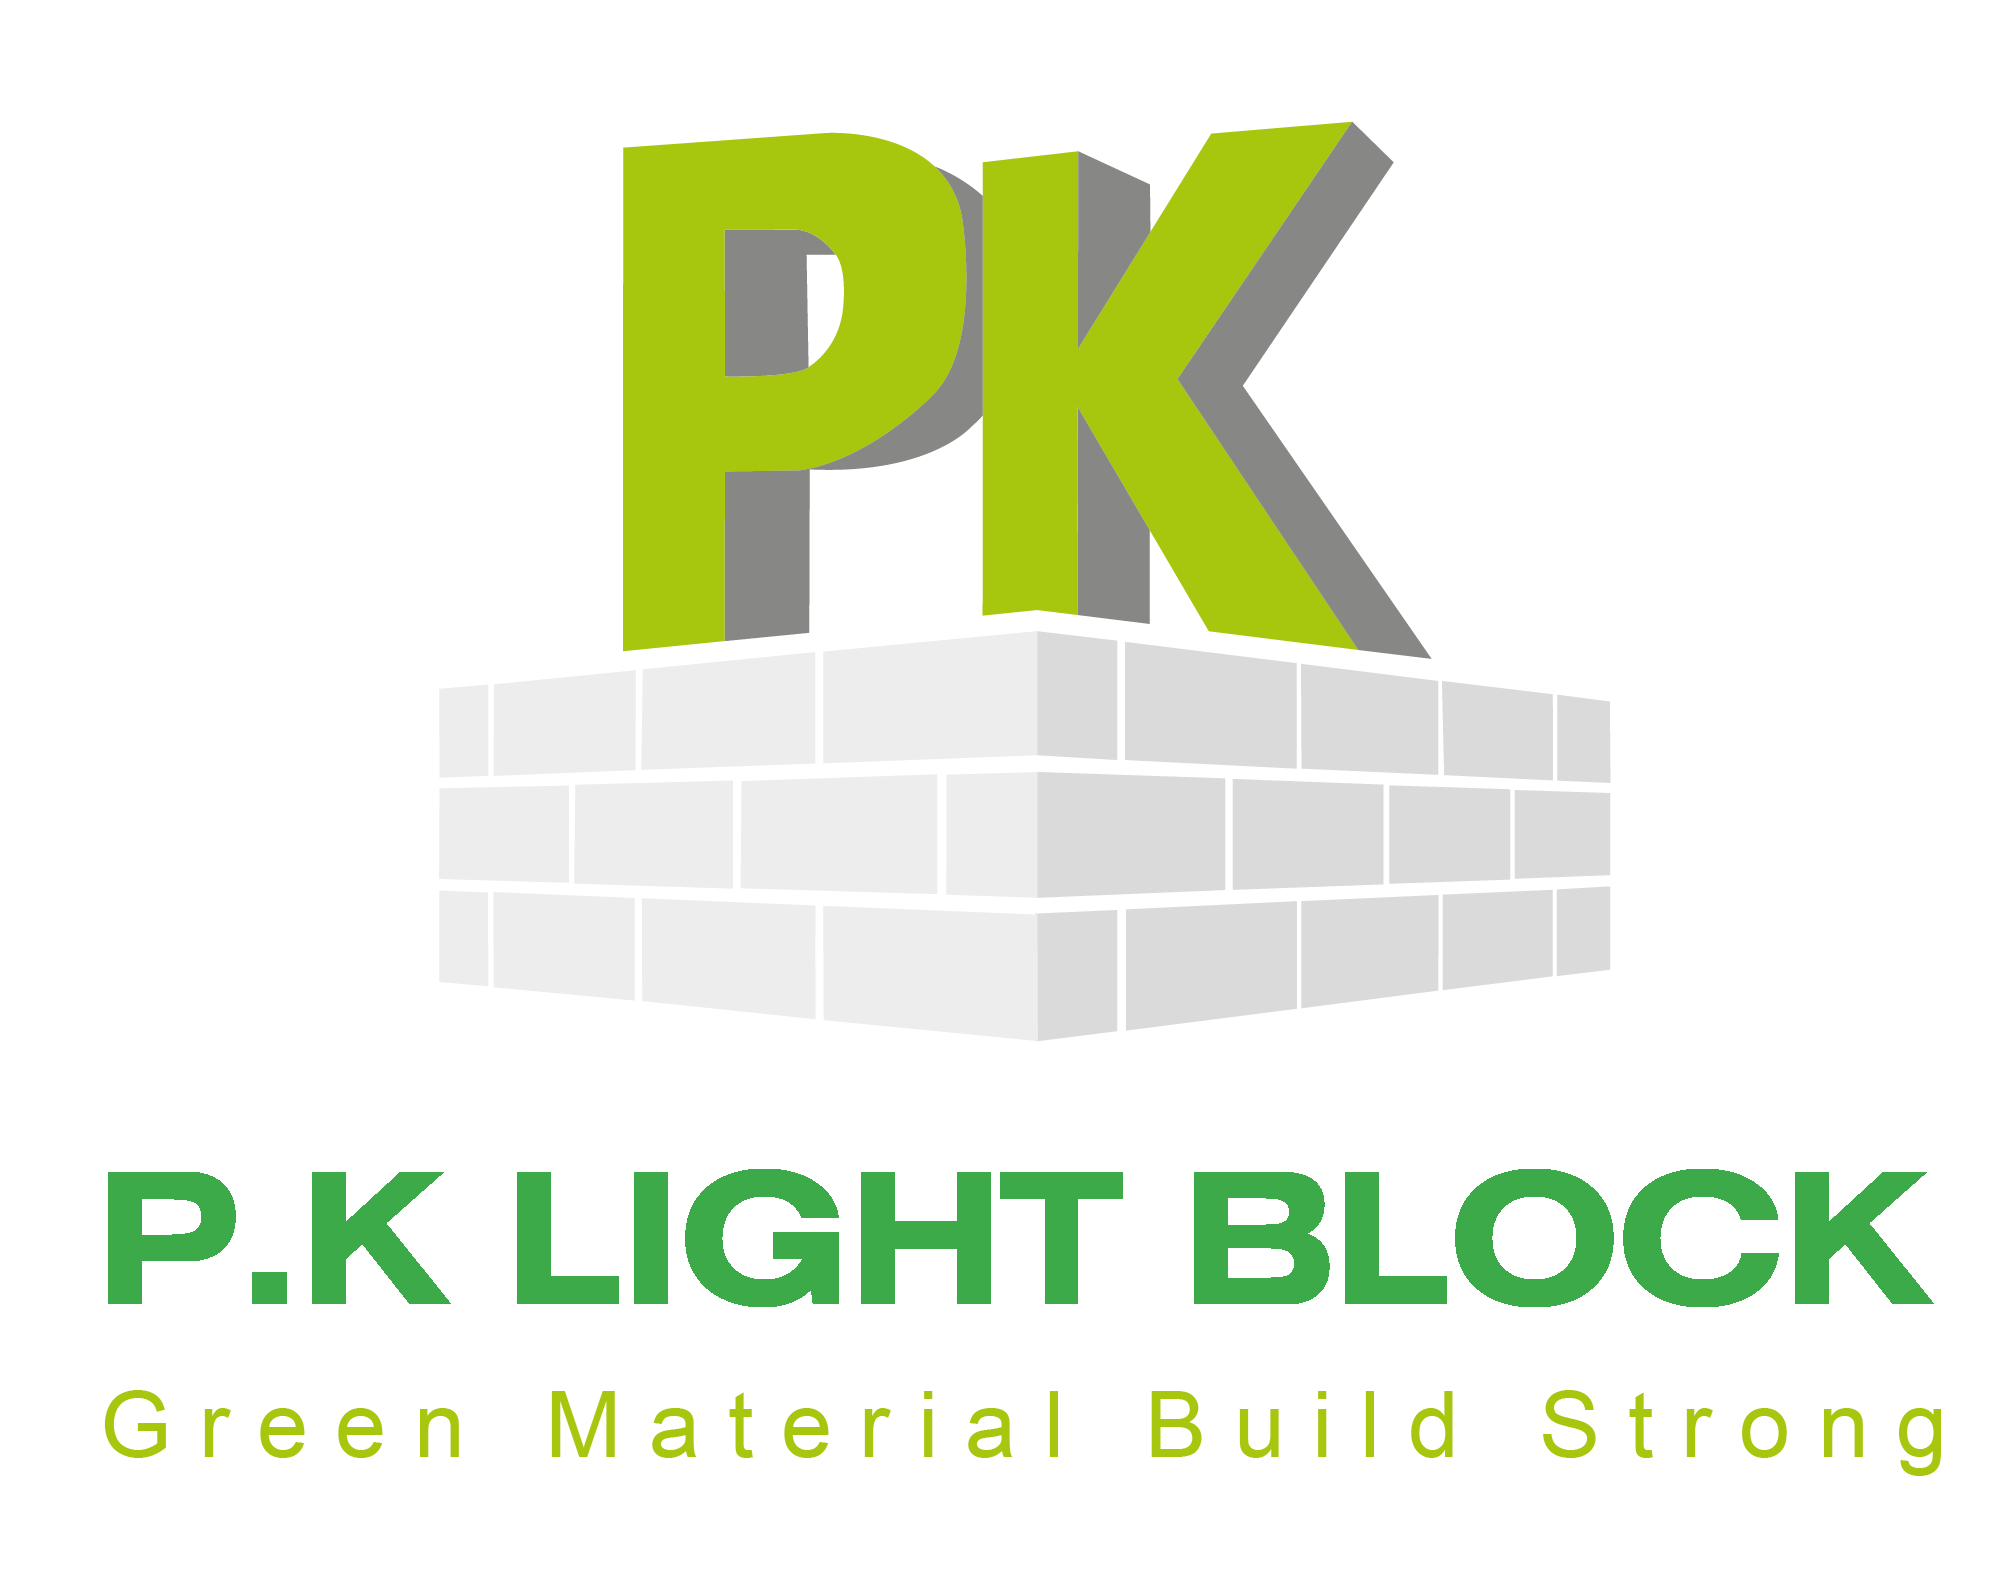 PK LightBlock